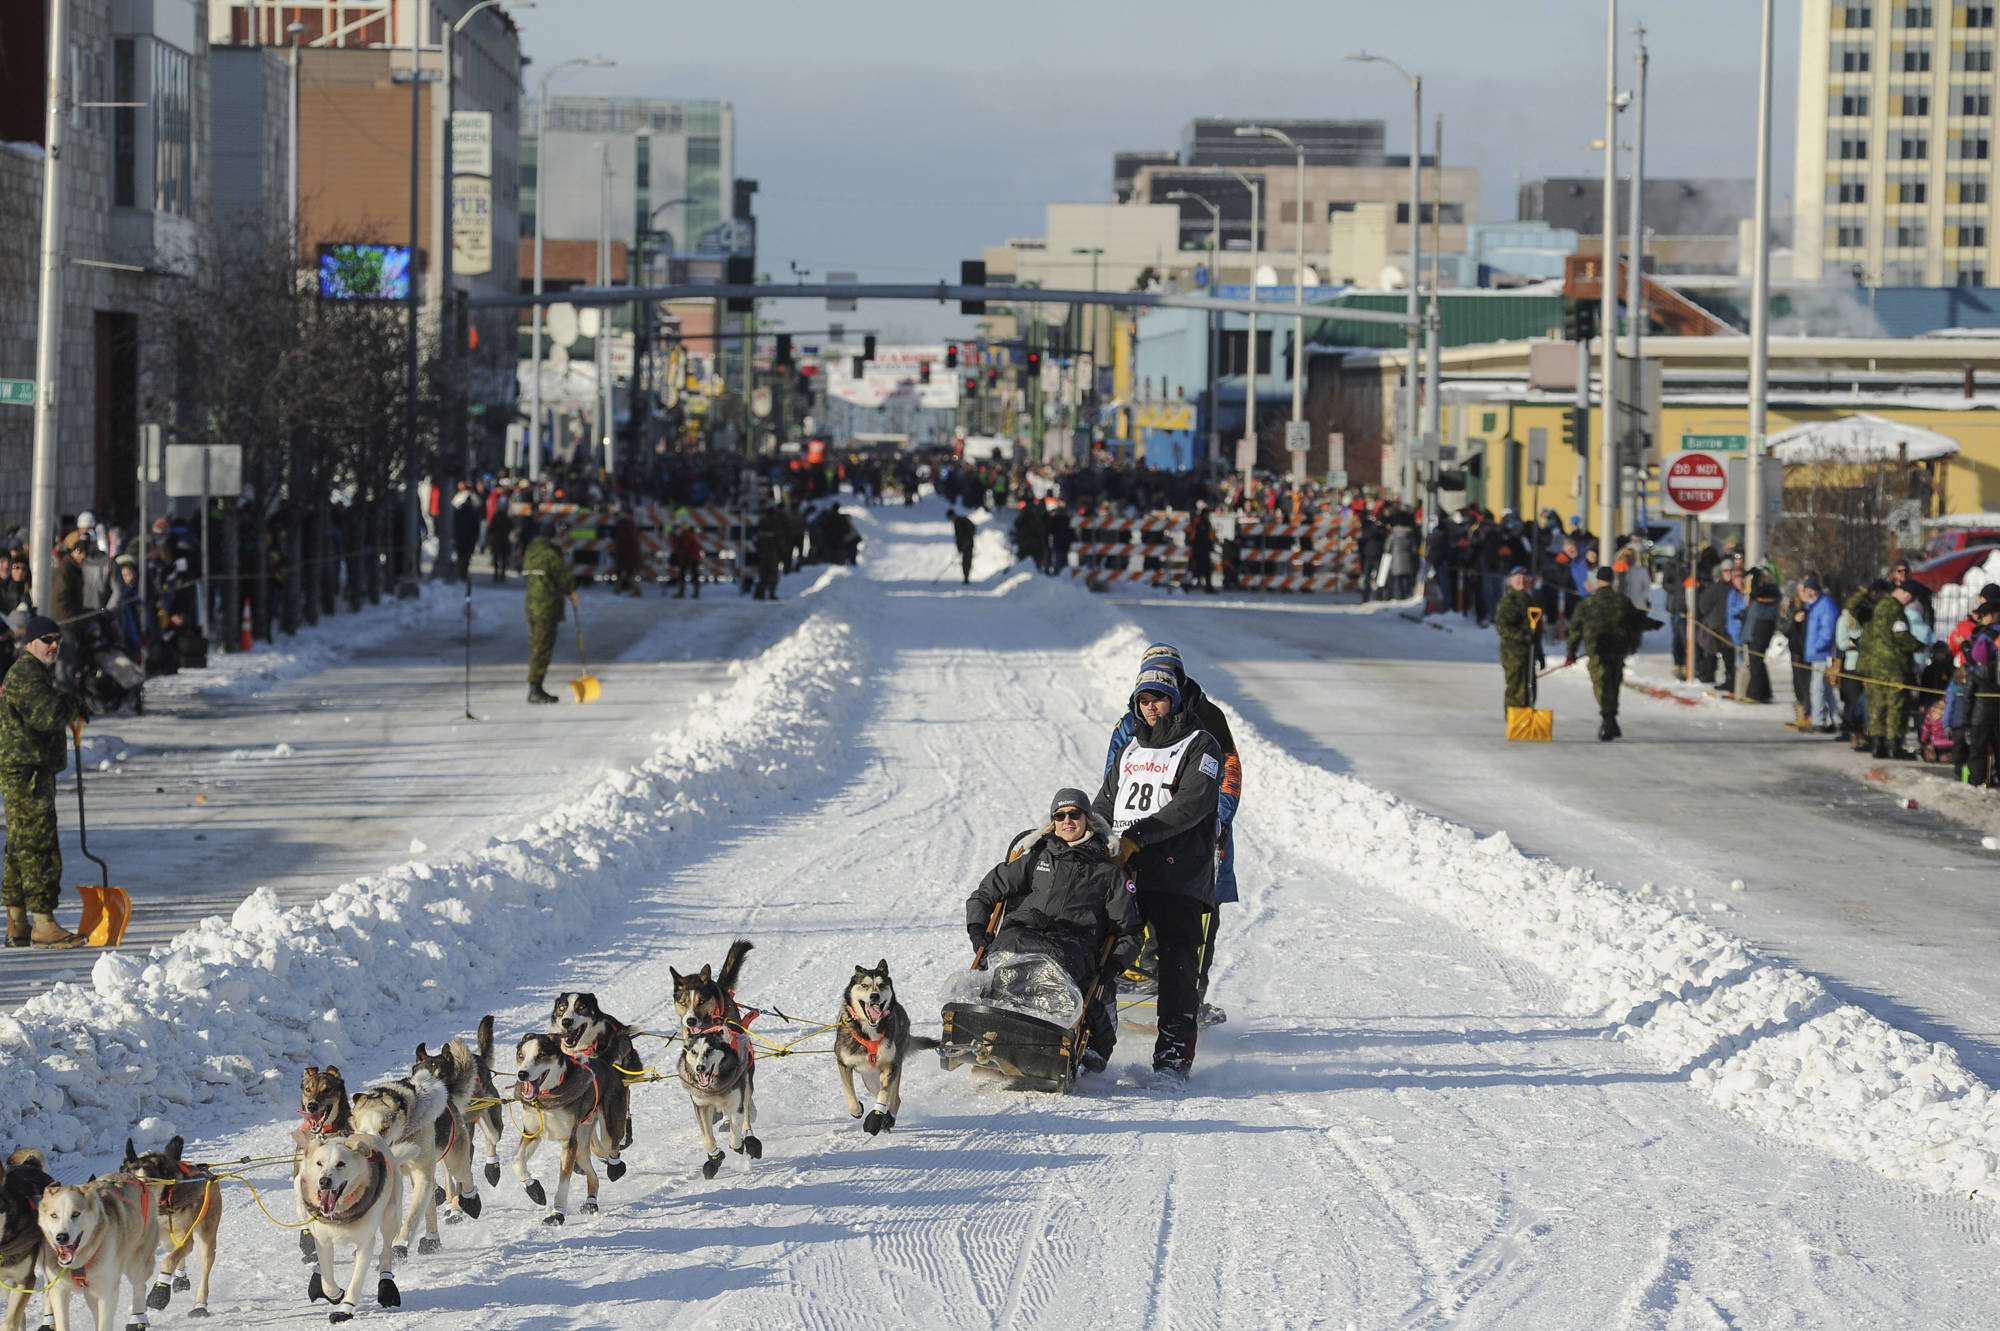 Defending champion Joar Lefseth Ulsom runs his team down Fourth Ave during the ceremonial start of the Iditarod Trail Sled Dog Race in Anchorage. Alaska Airlines announced Monday, March 2, 2020, it will drop its sponsorship of the Iditarod, Alaska's most famous sporting event. The airline in a statement said the decision was made as it transitions to a new corporate giving strategy, but People for the Ethical Treatment of Animals, the most vocal critic of the thousand-mile sled dog race across Alaska, immediately took credit. (AP Photo/Michael Dinneen, File)